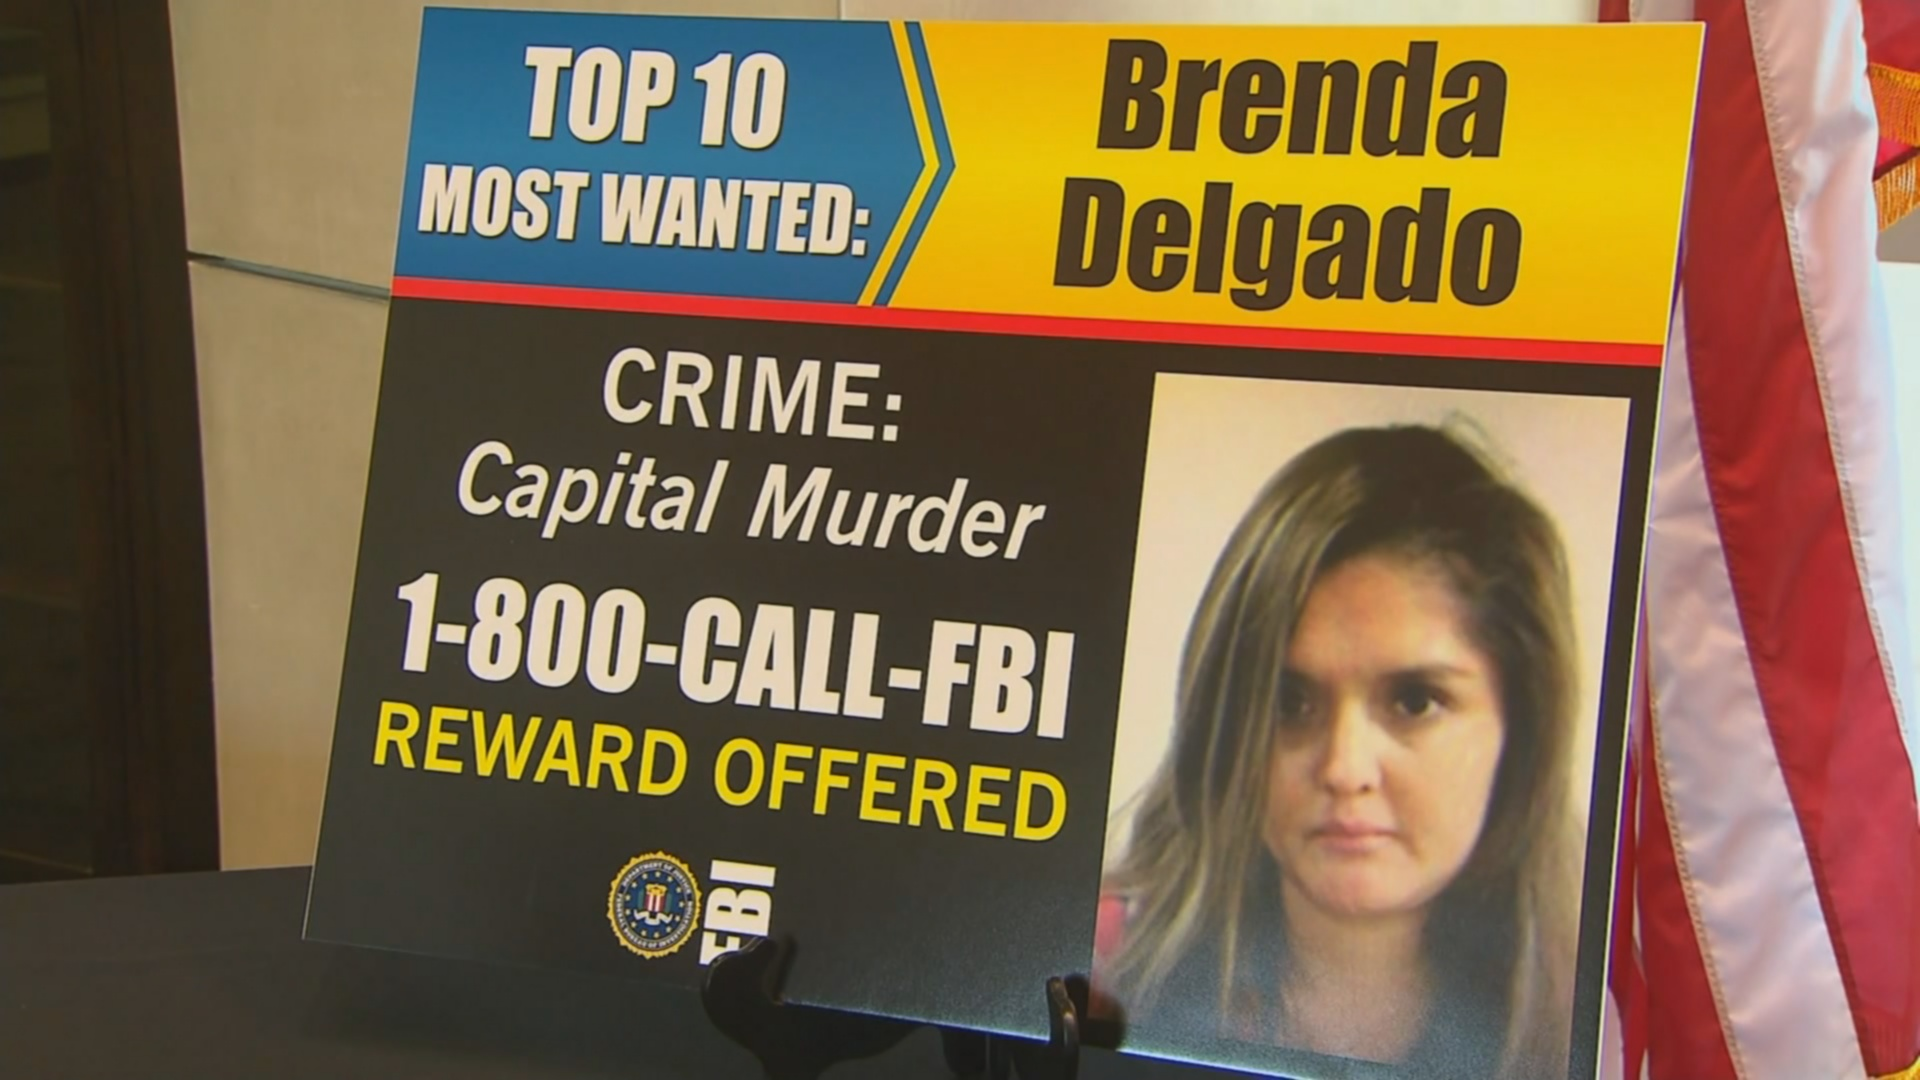 Dallas Woman is the only Female on FBI's Most Wanted List